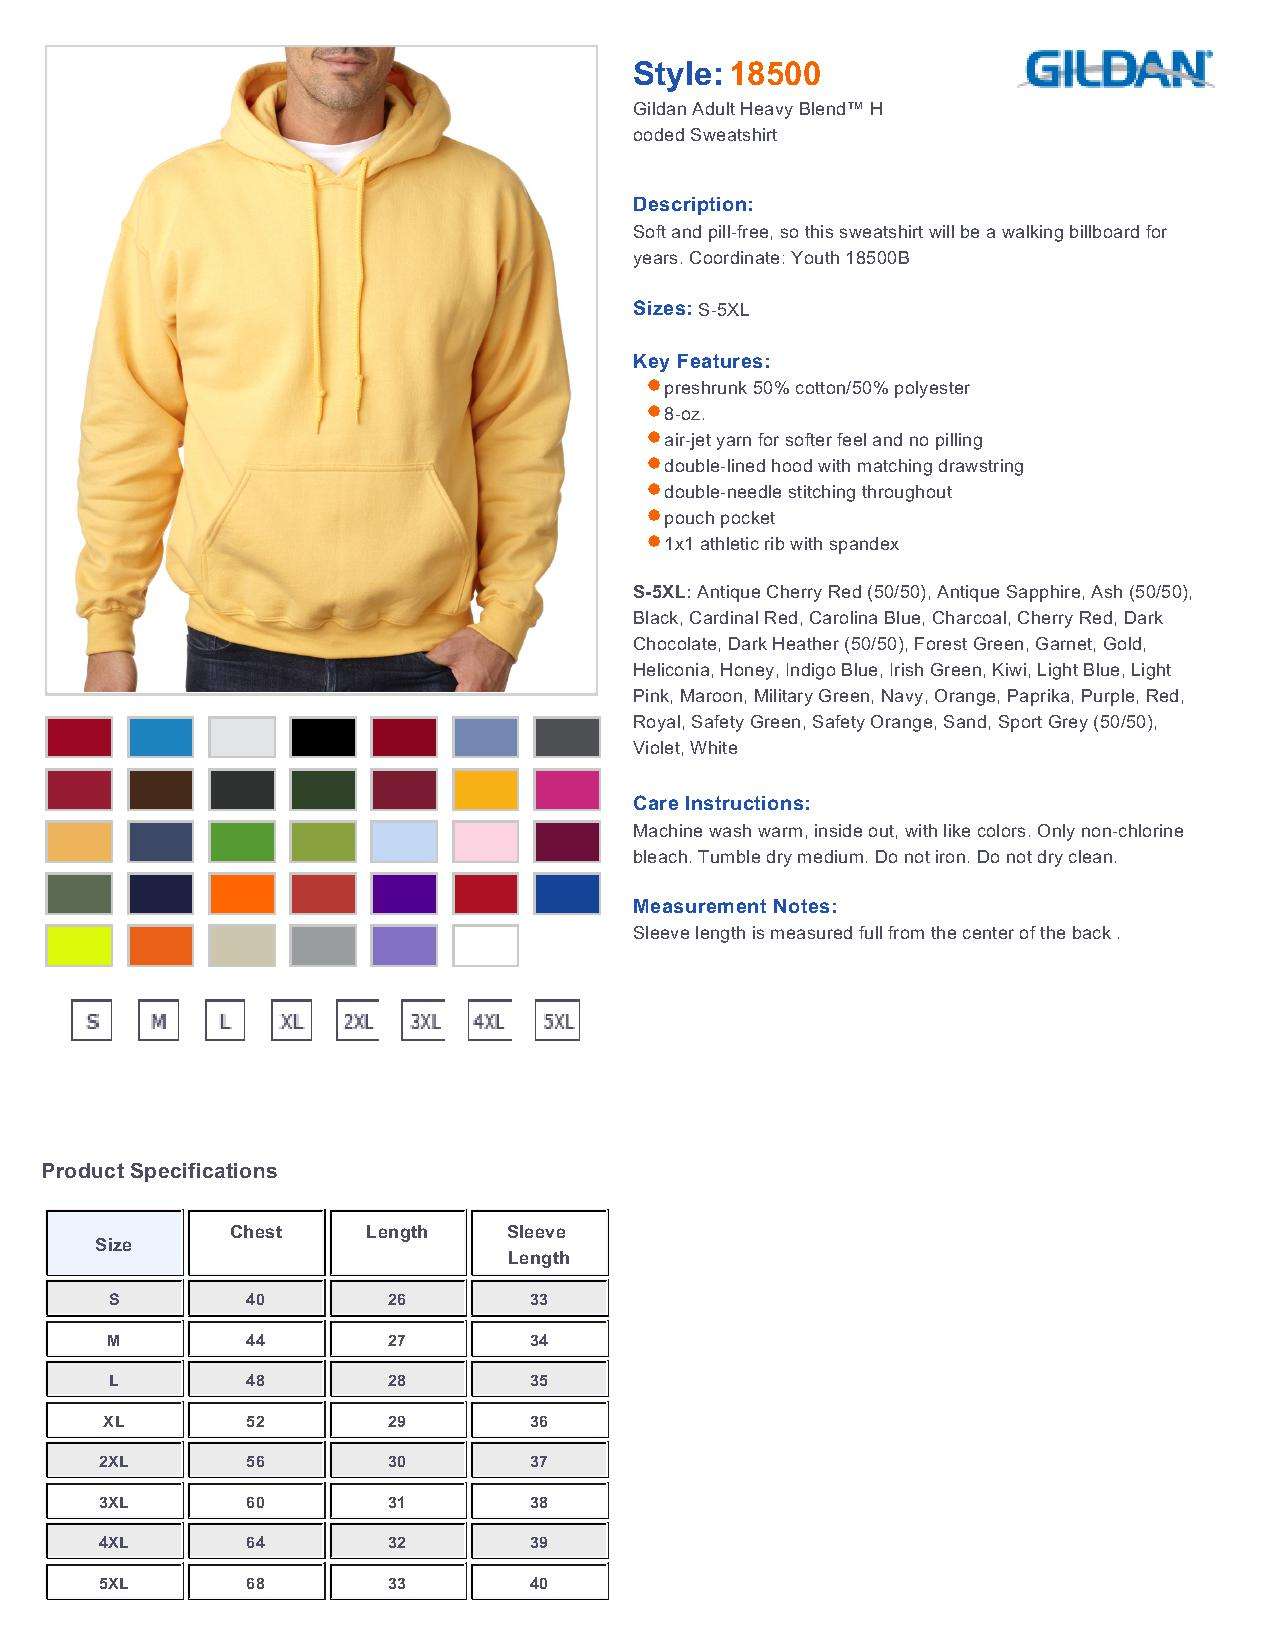 Hoodies loving memory store for Gildan brand t shirt size chart